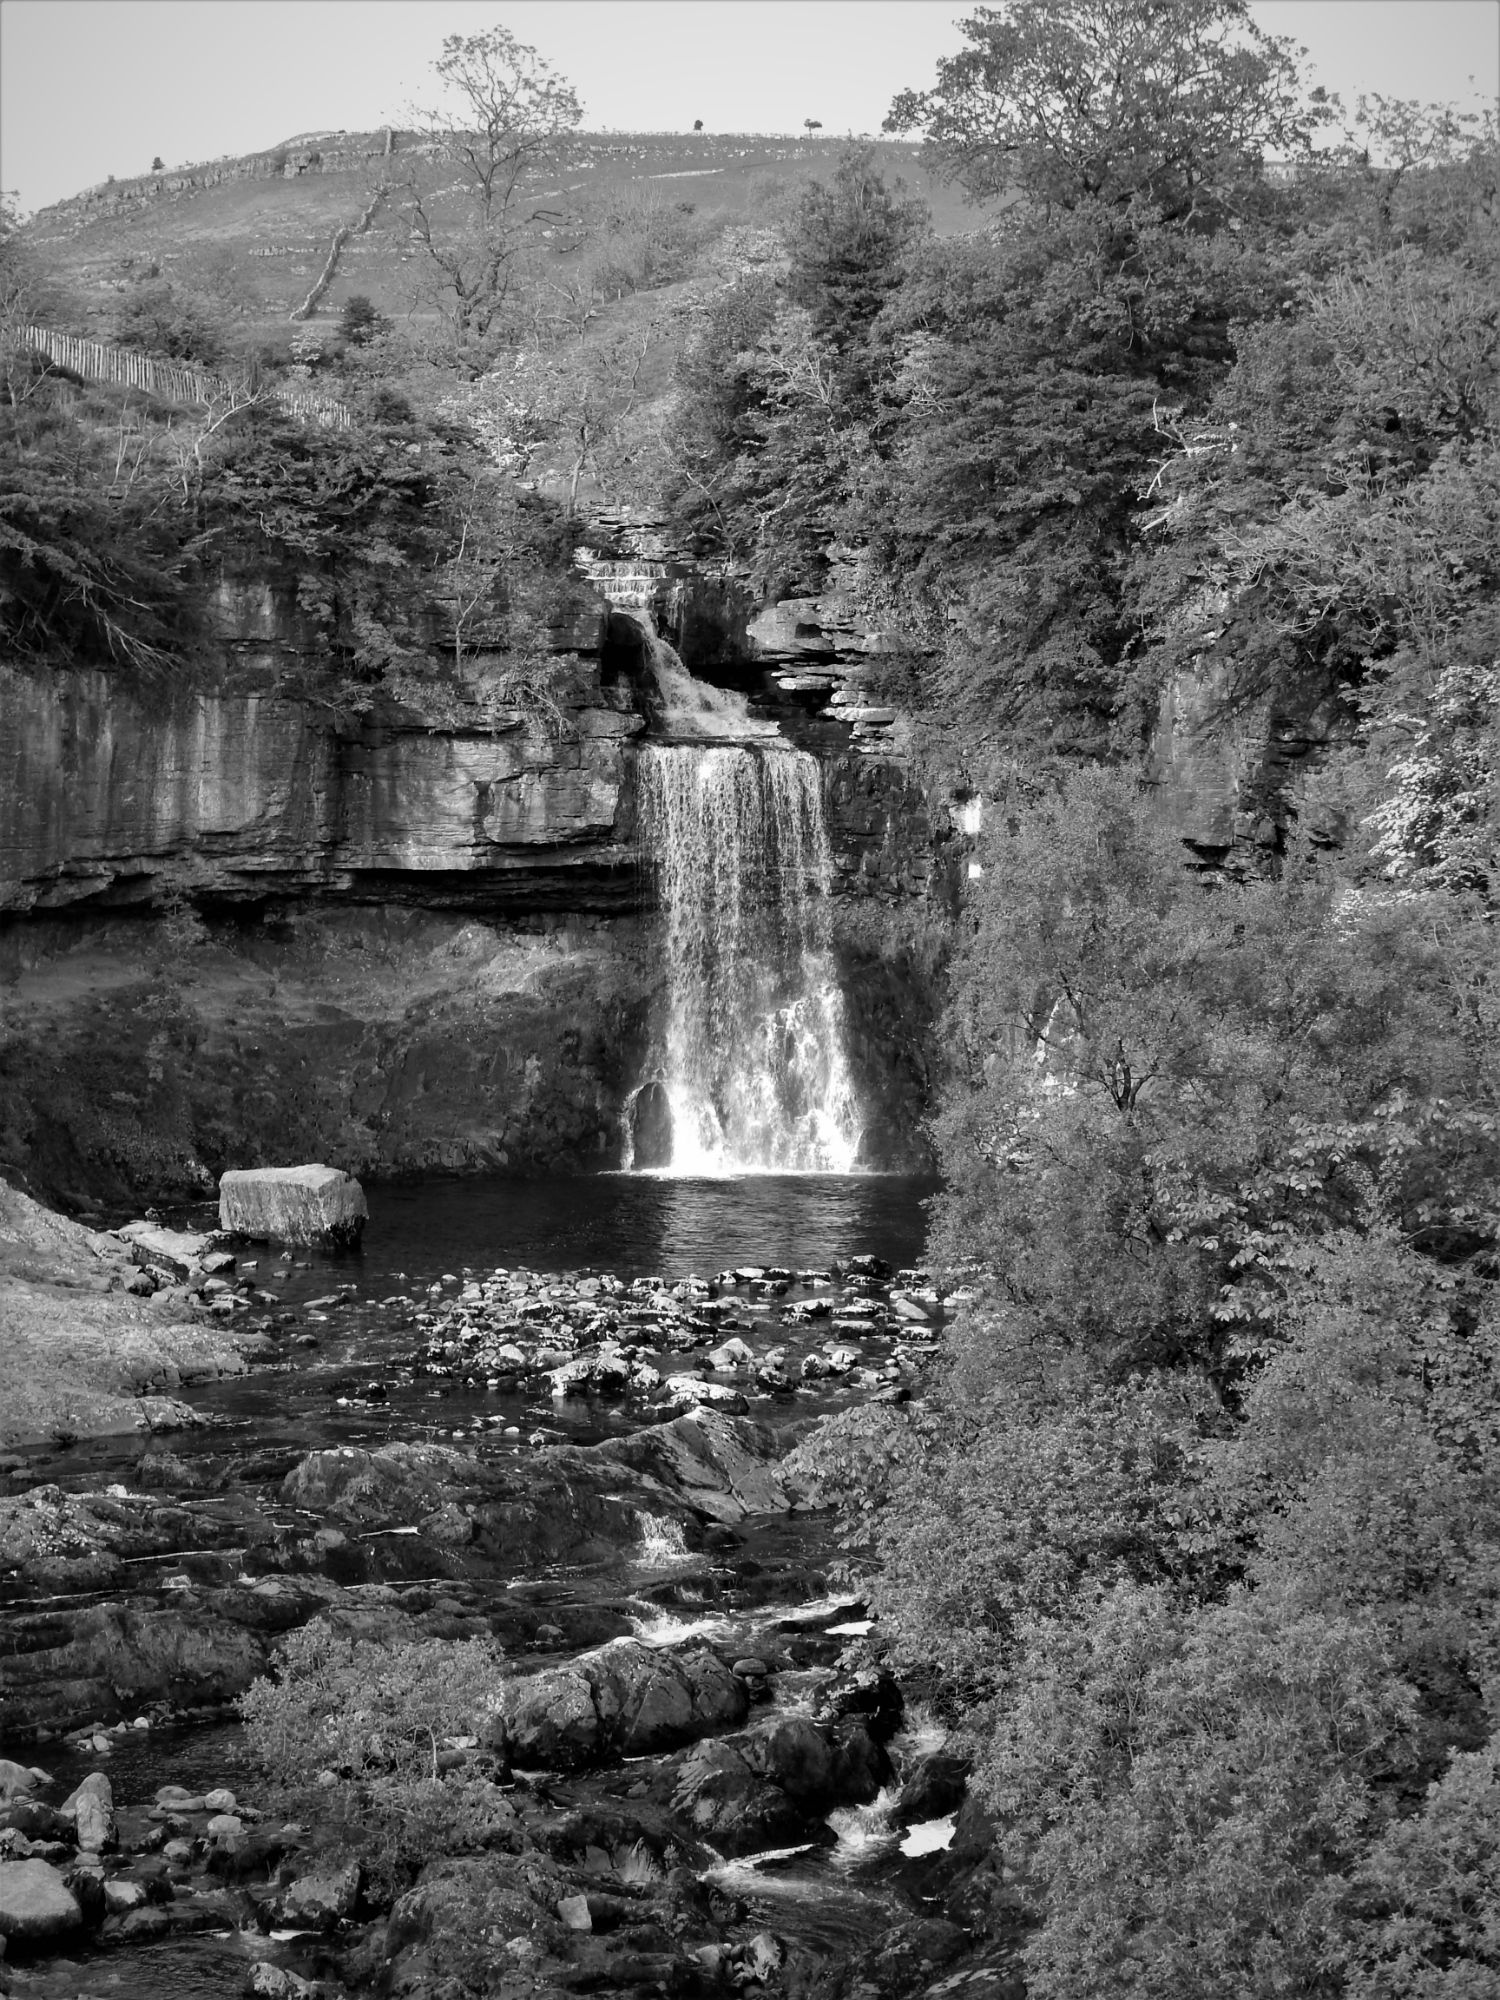 Thornton Force on the Waterfalls Trail